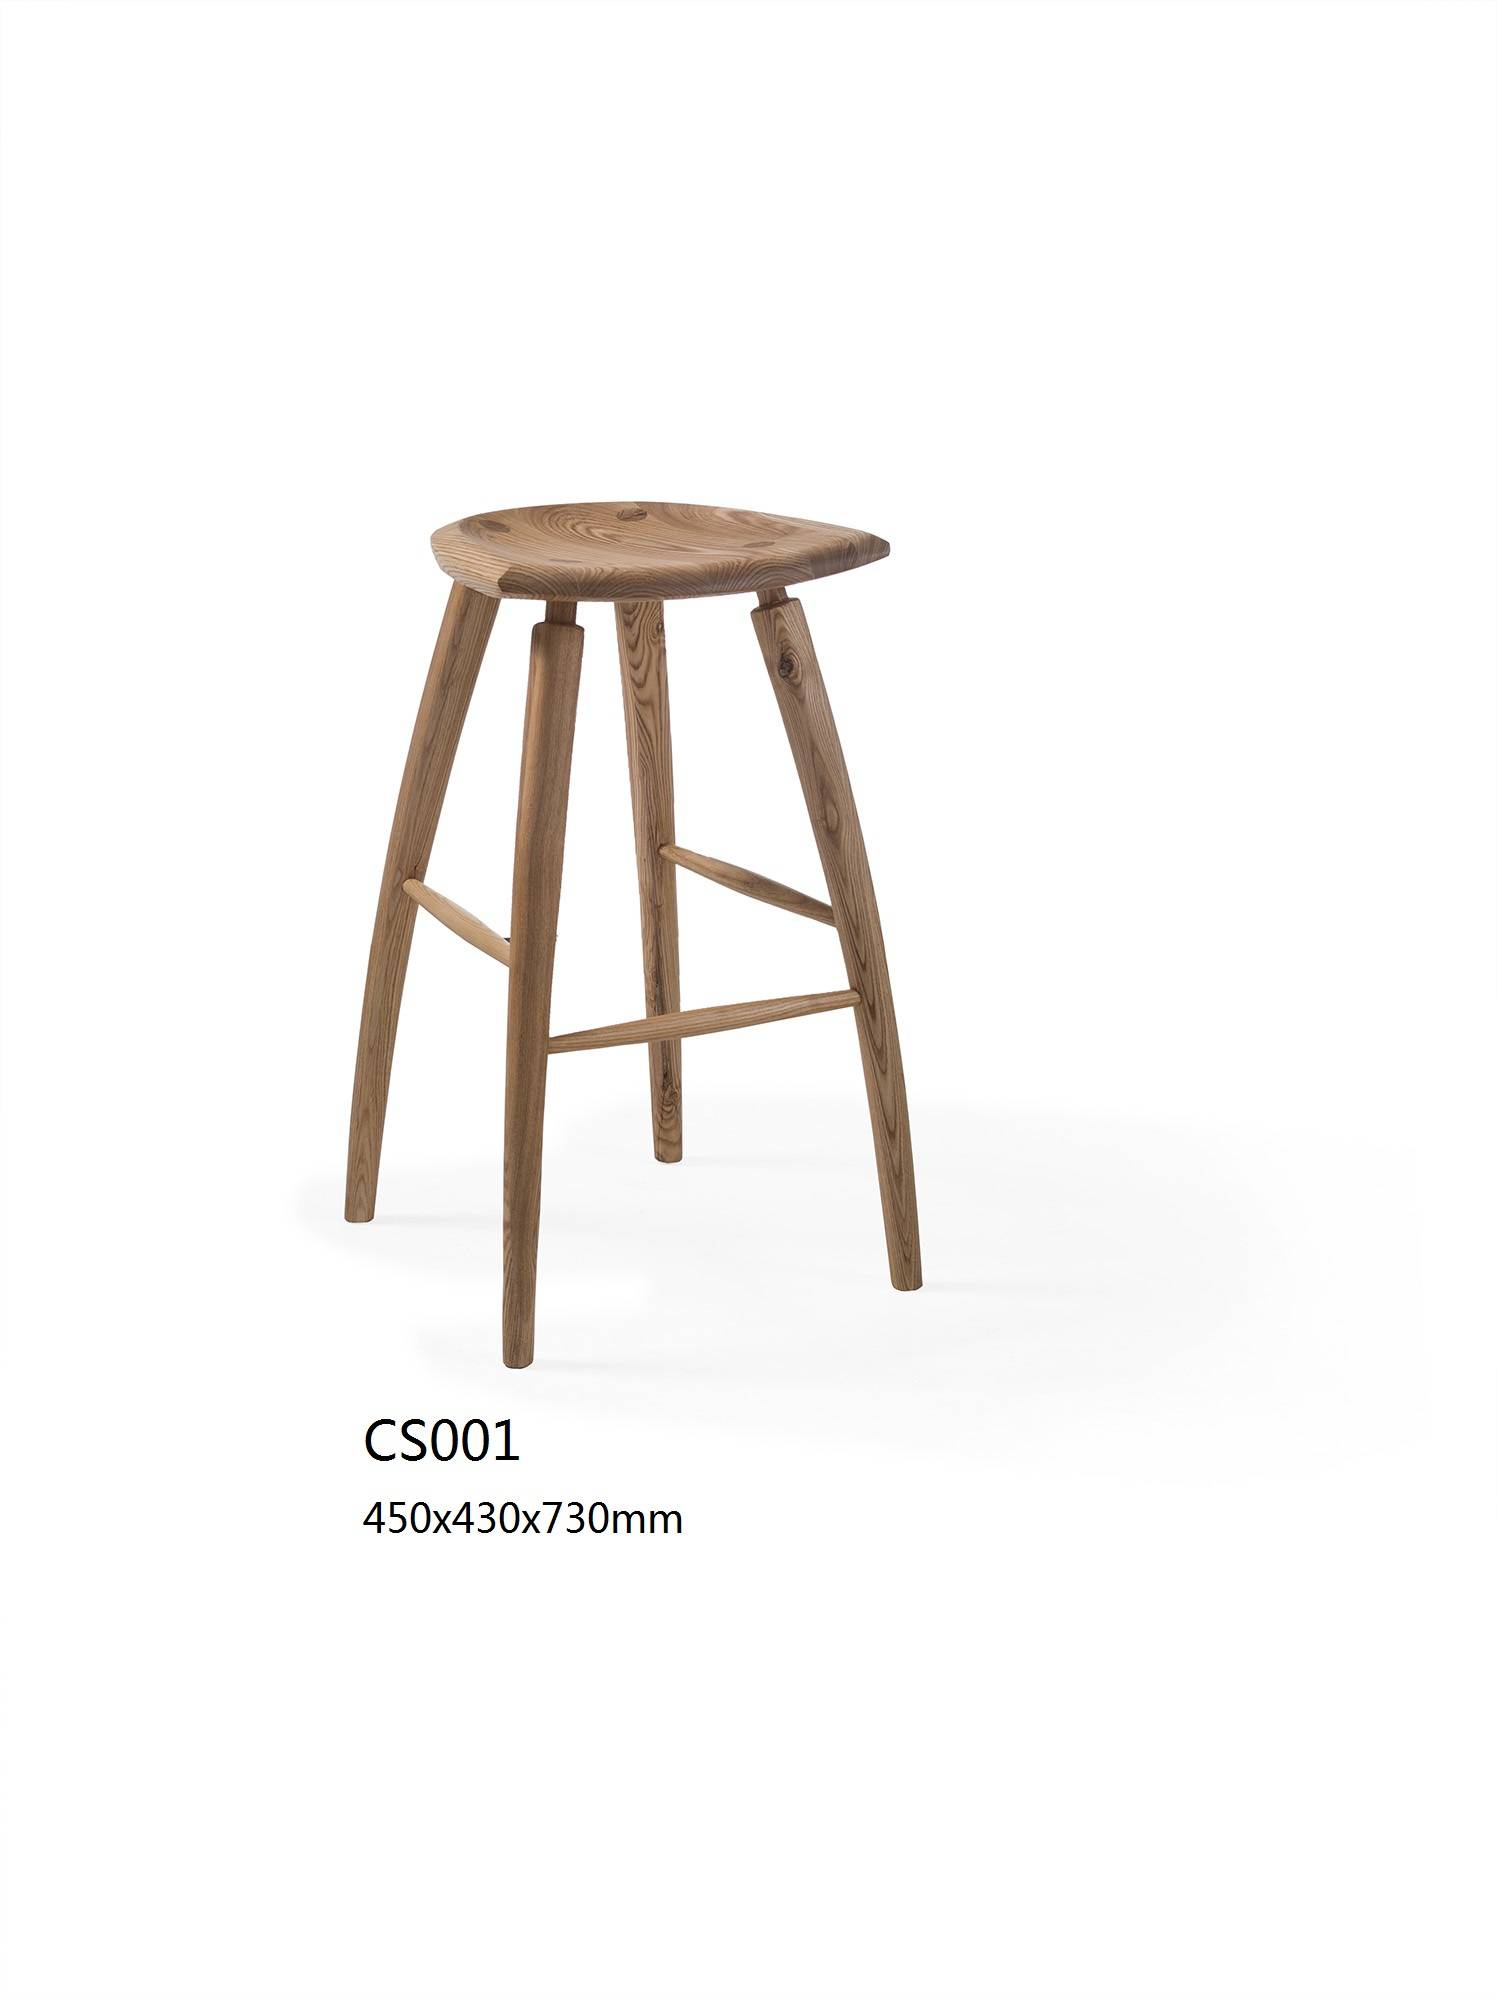 Natural Finish Wooden Bar Stool With Different Shape Top,Solid wood design wooden bar chairs